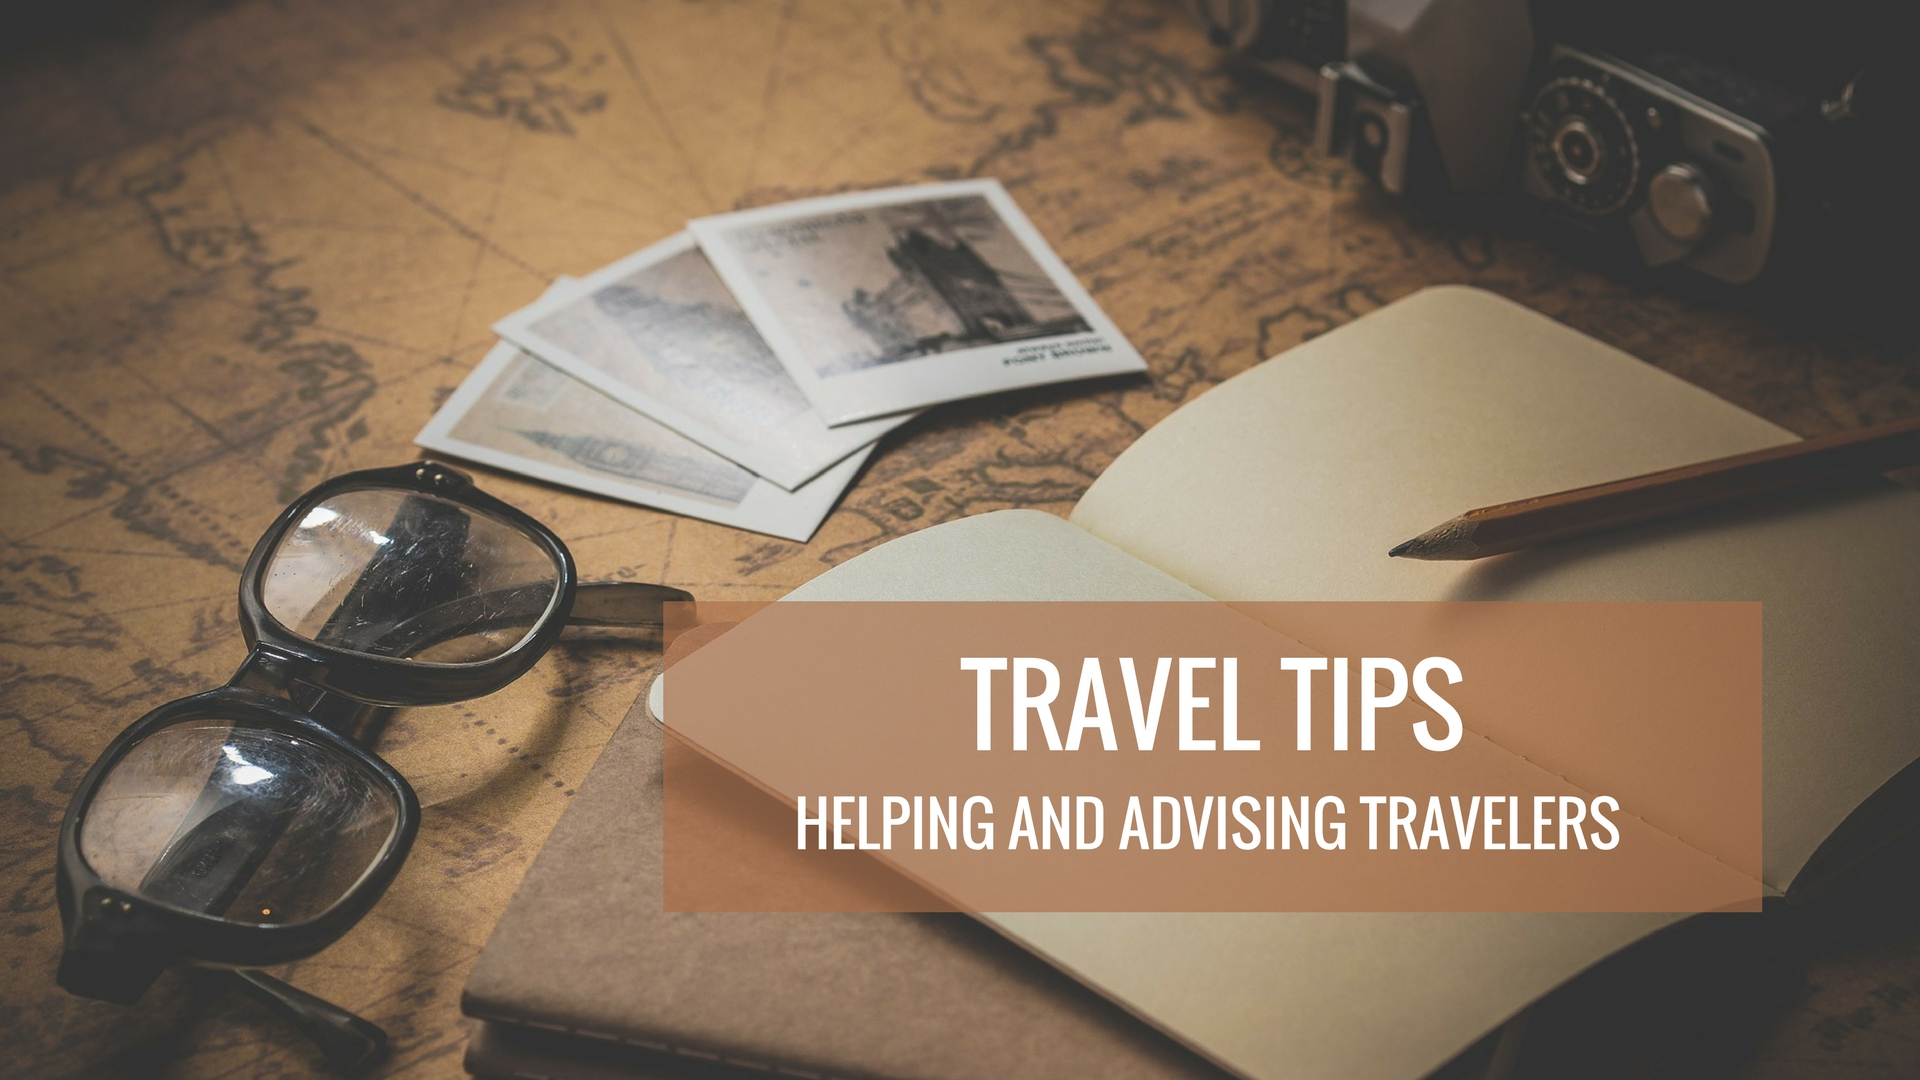 Travel tips for travellers